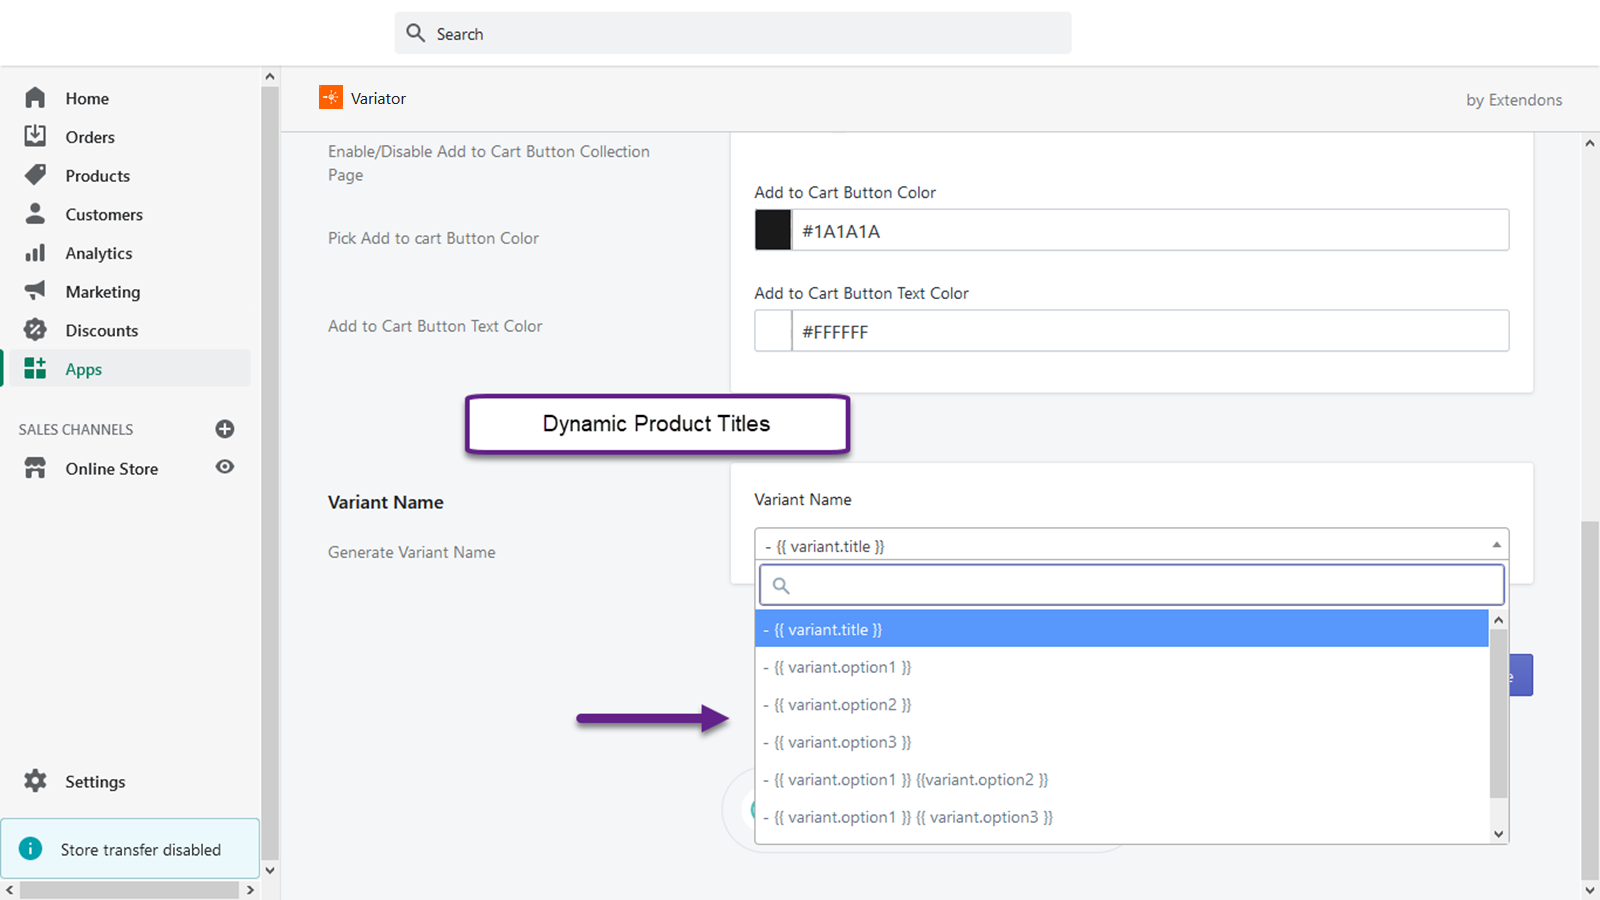 Dynamic Product Titles